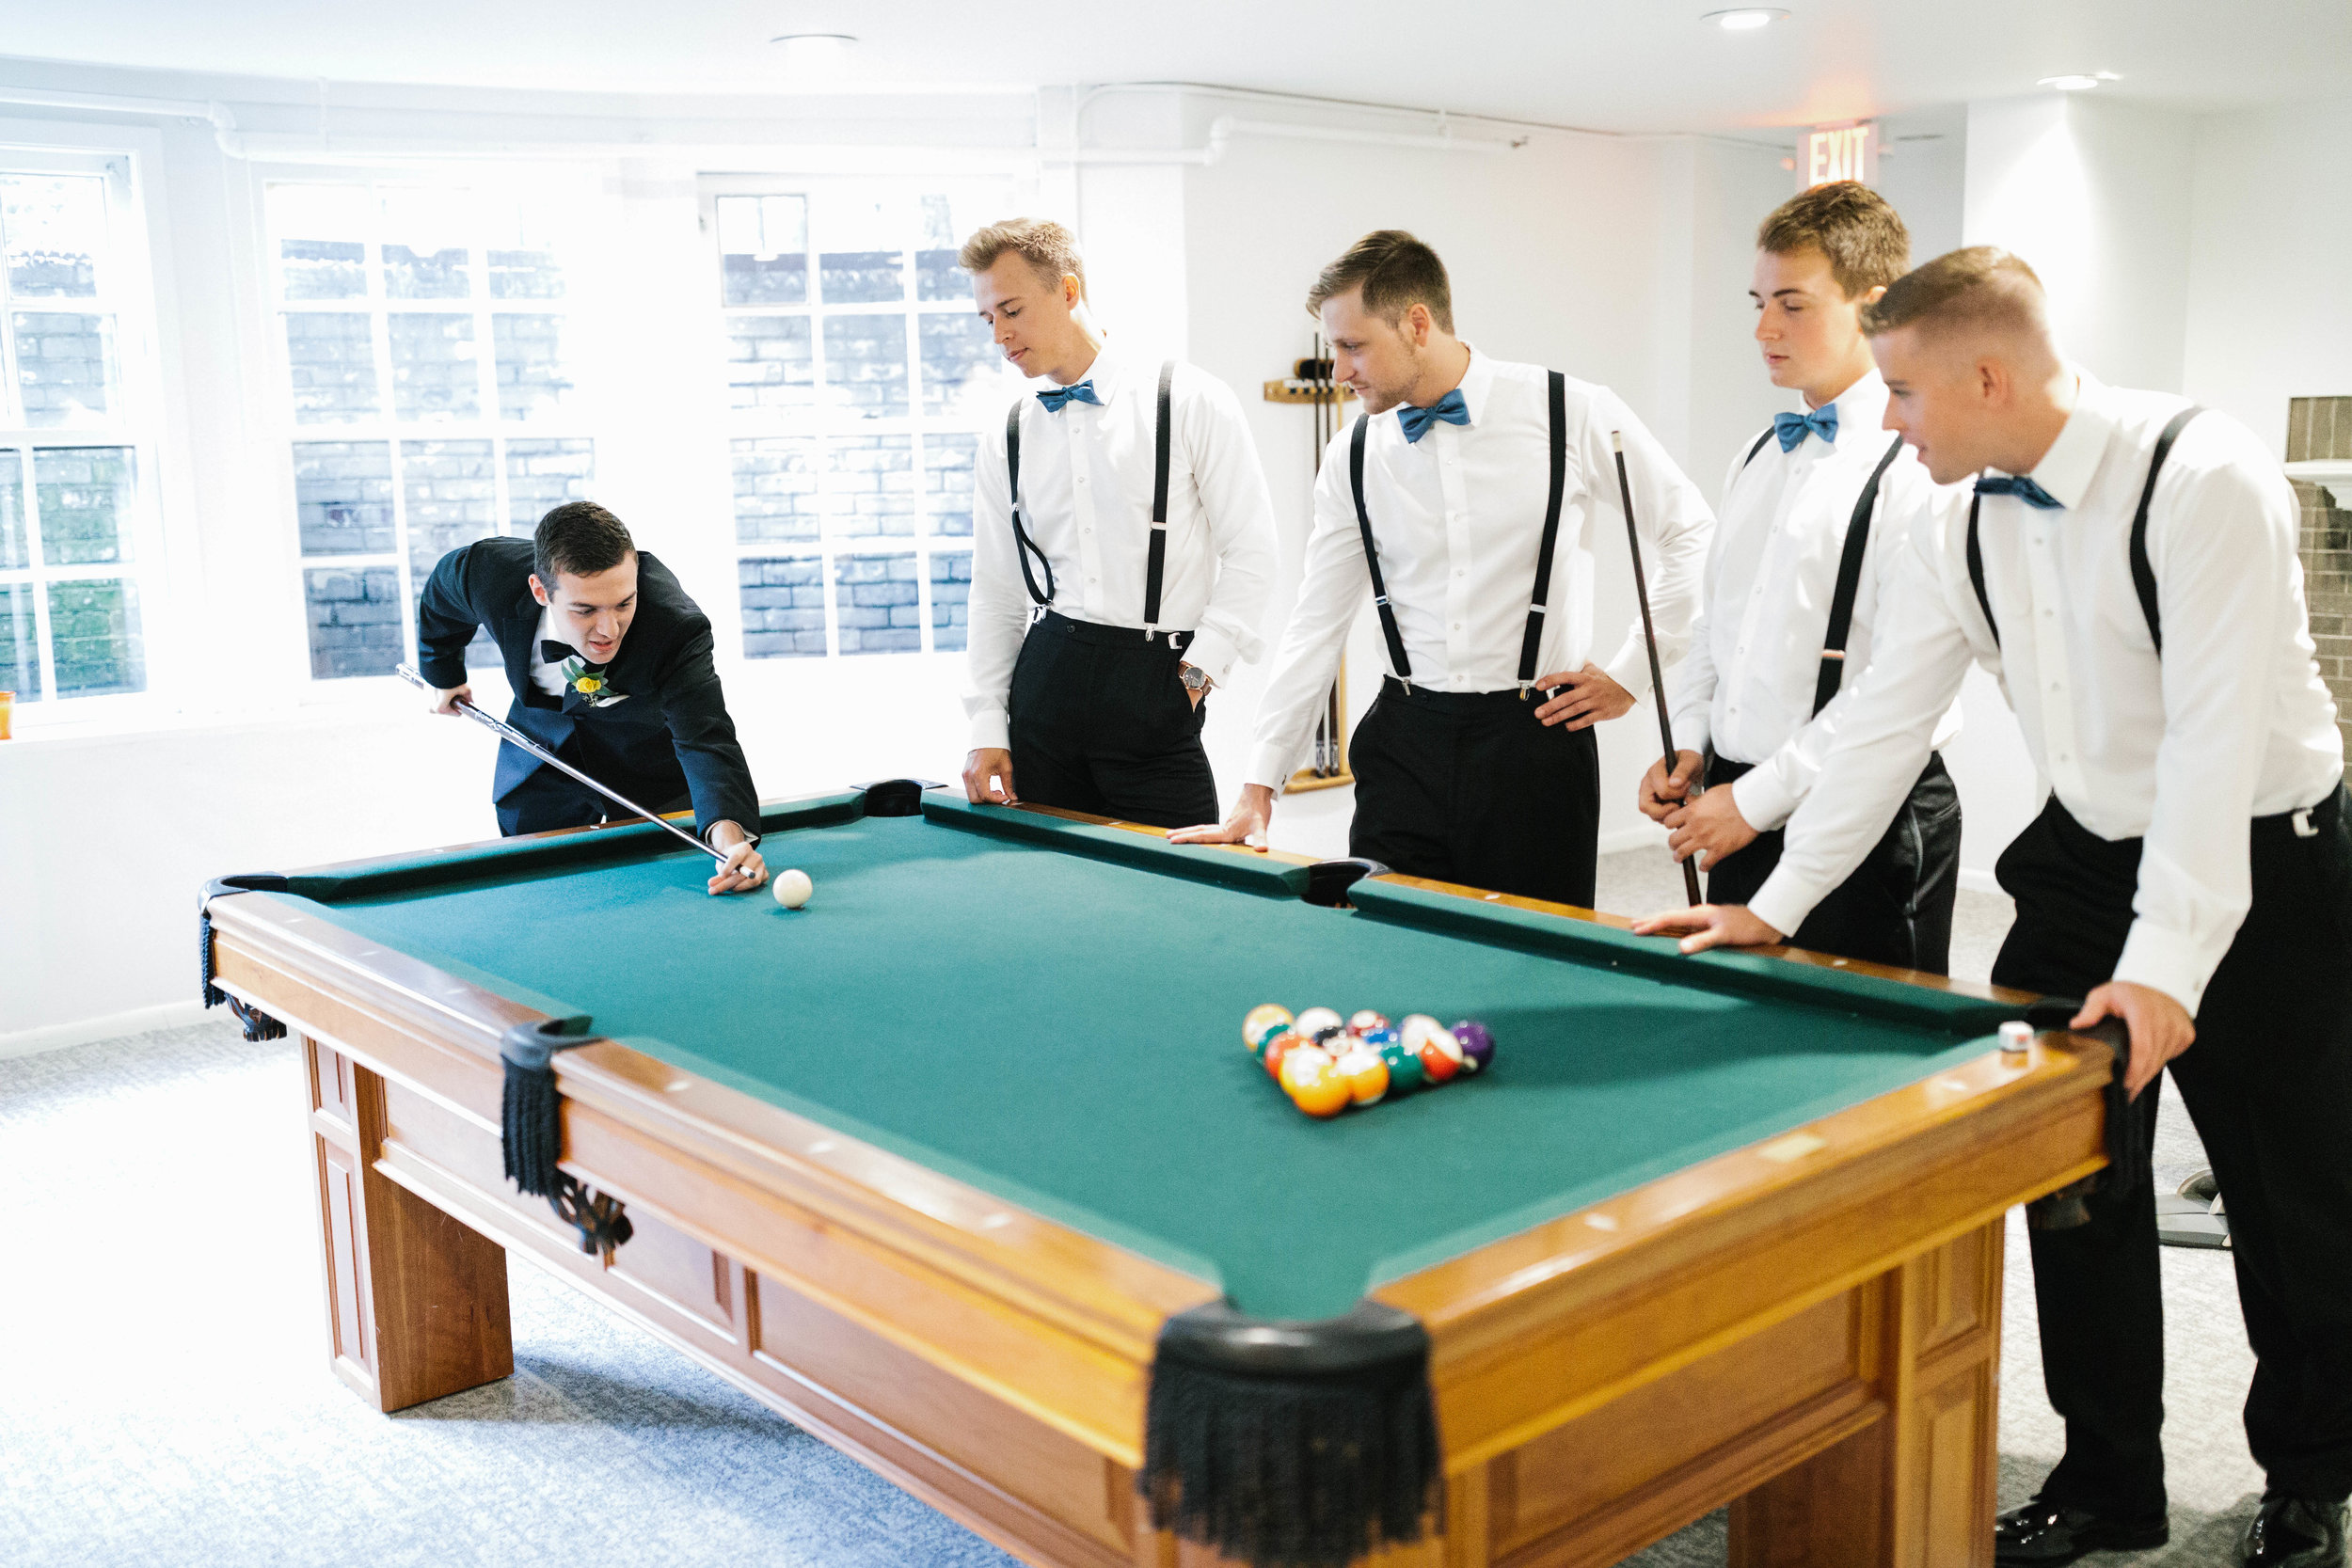 Billiard Lounge - The Lounge is a warm, relaxing space to entertain any group. The room features elegant lounge furniture, a television, and a pool table, perfect for kicking back before or after the main event.